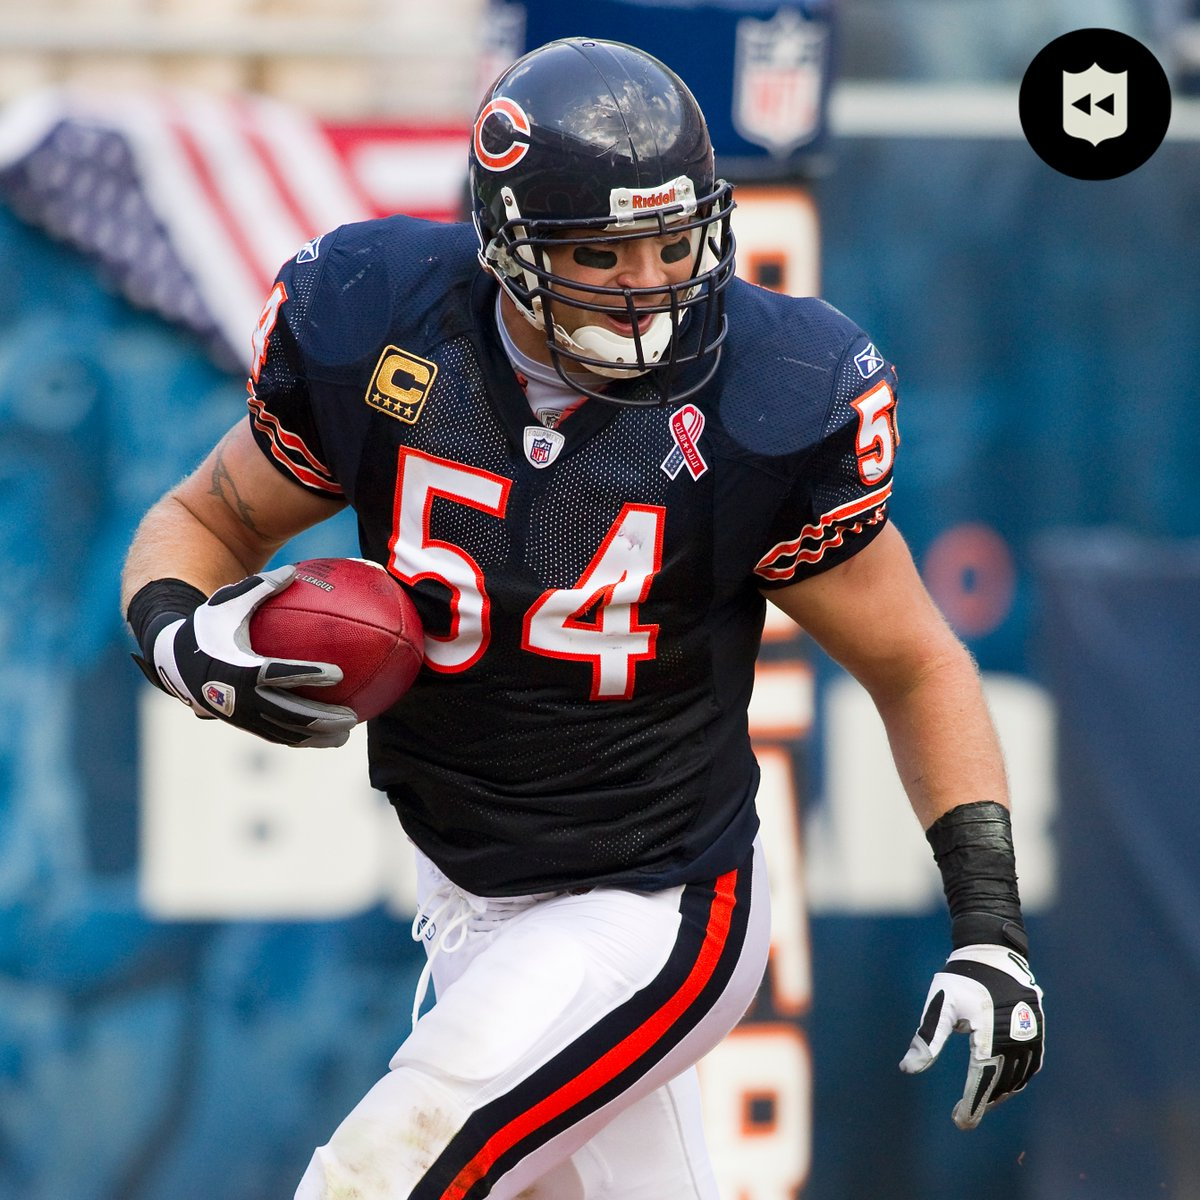 Wishing Hall of Fame LB @BUrlacher54 a happy 42nd birthday! 🐻 @ChicagoBears https://t.co/1Cans2wkdO